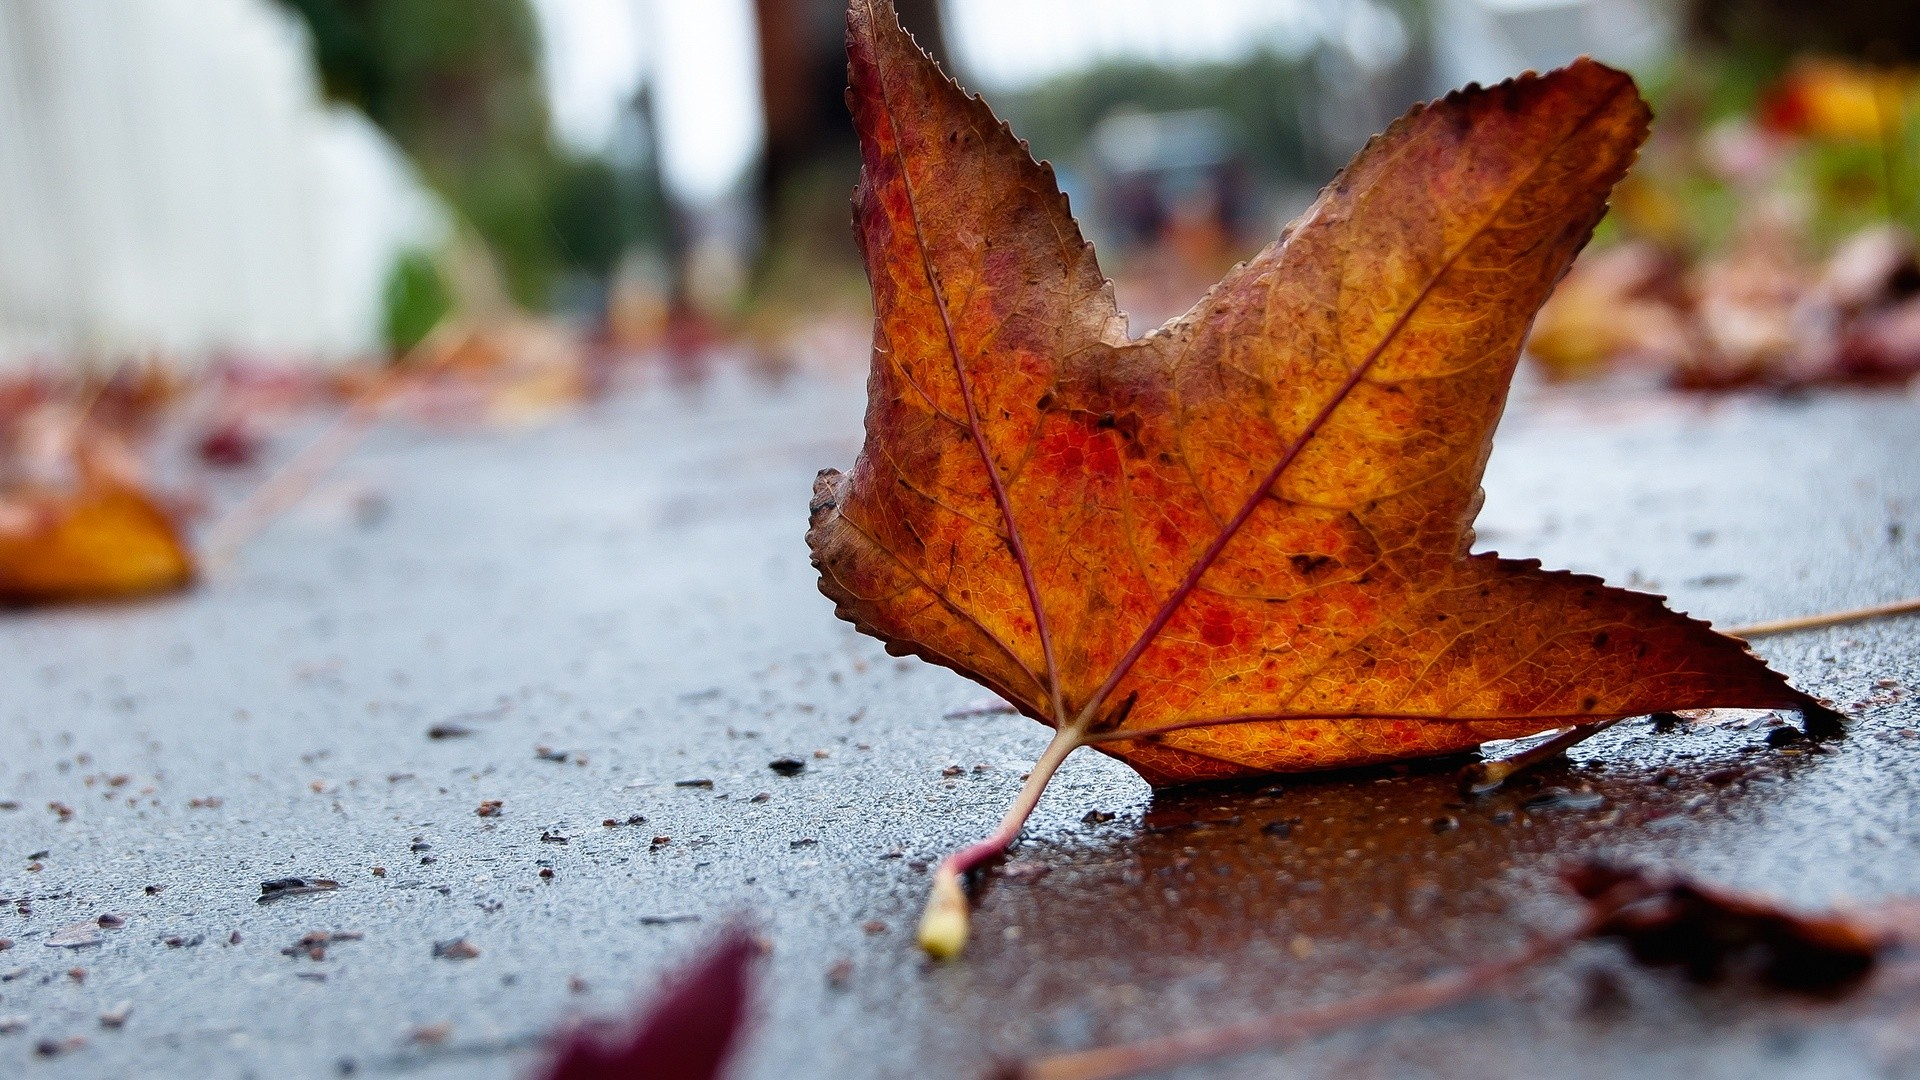 Res: 1920x1080,  Autumn Leaf Macro. How to set wallpaper on your desktop? Click  the download link from above and set the wallpaper on the desktop from your  OS.